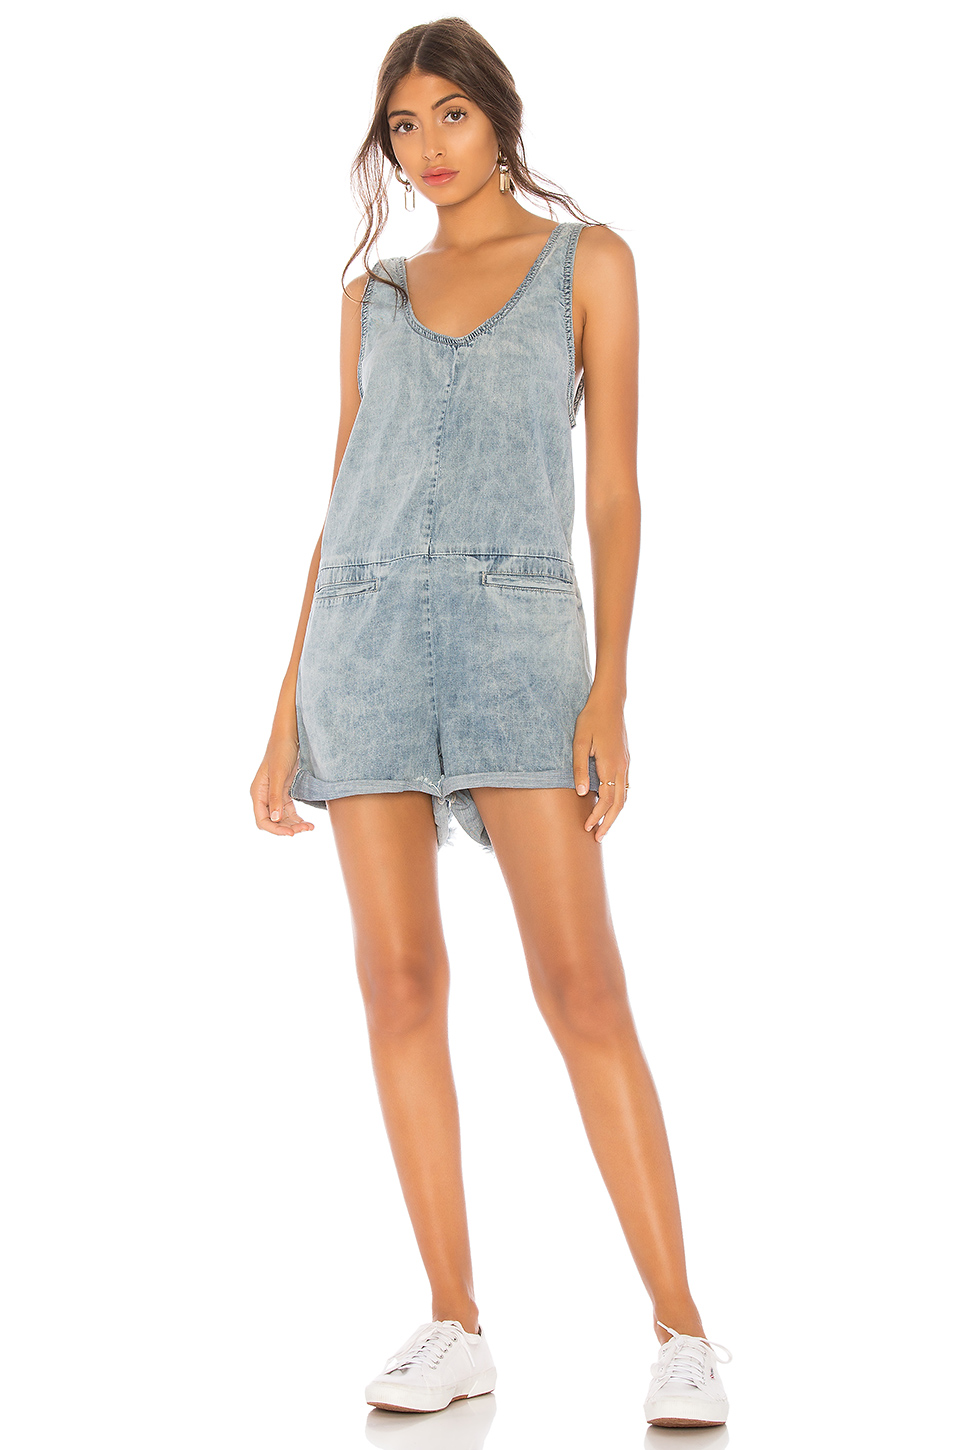 02e10e93aa93 One Teaspoon Denim Romper · One Teaspoon Denim Romper ...